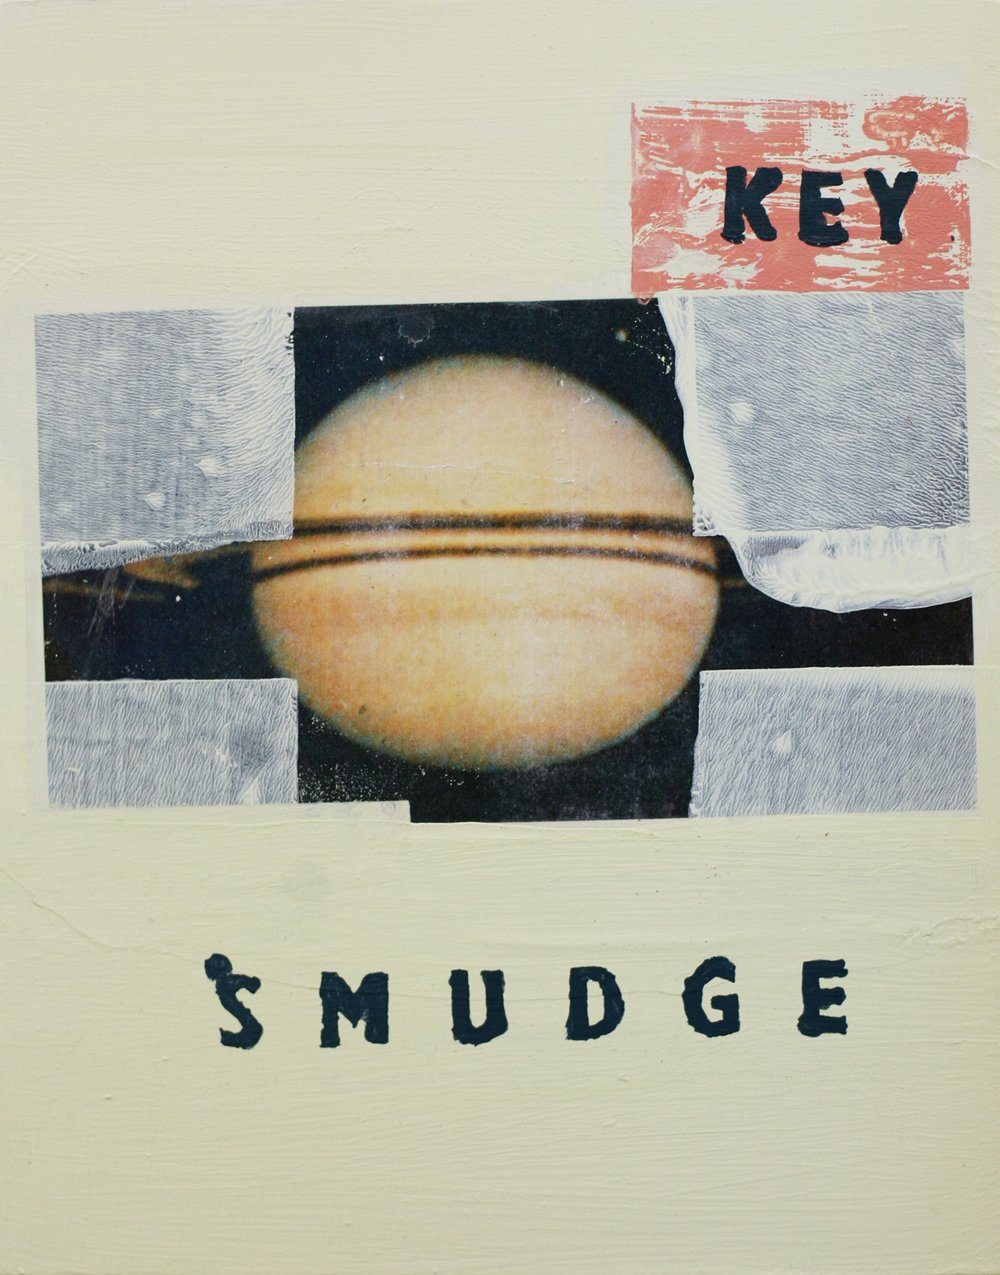 The Key Smudge  2012, acrylic and archival print on paper mounted to panel, 11 x 14""